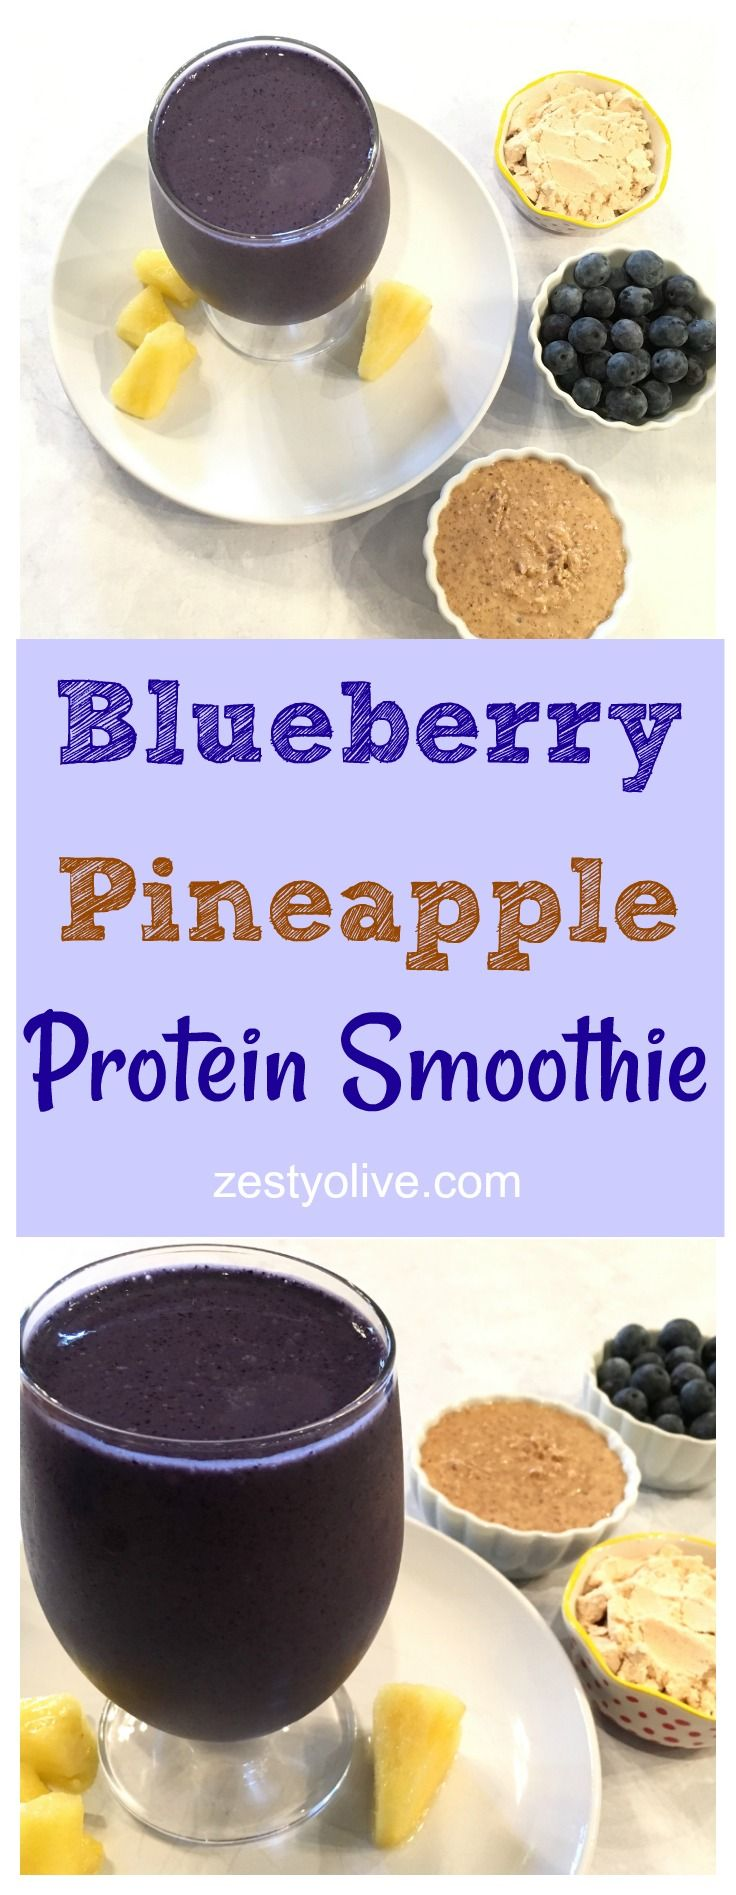 Blueberry Pineapple Protein Smoothie with almond milk, almond butter, protein powder, blueberries, pineapple and frozen banana.